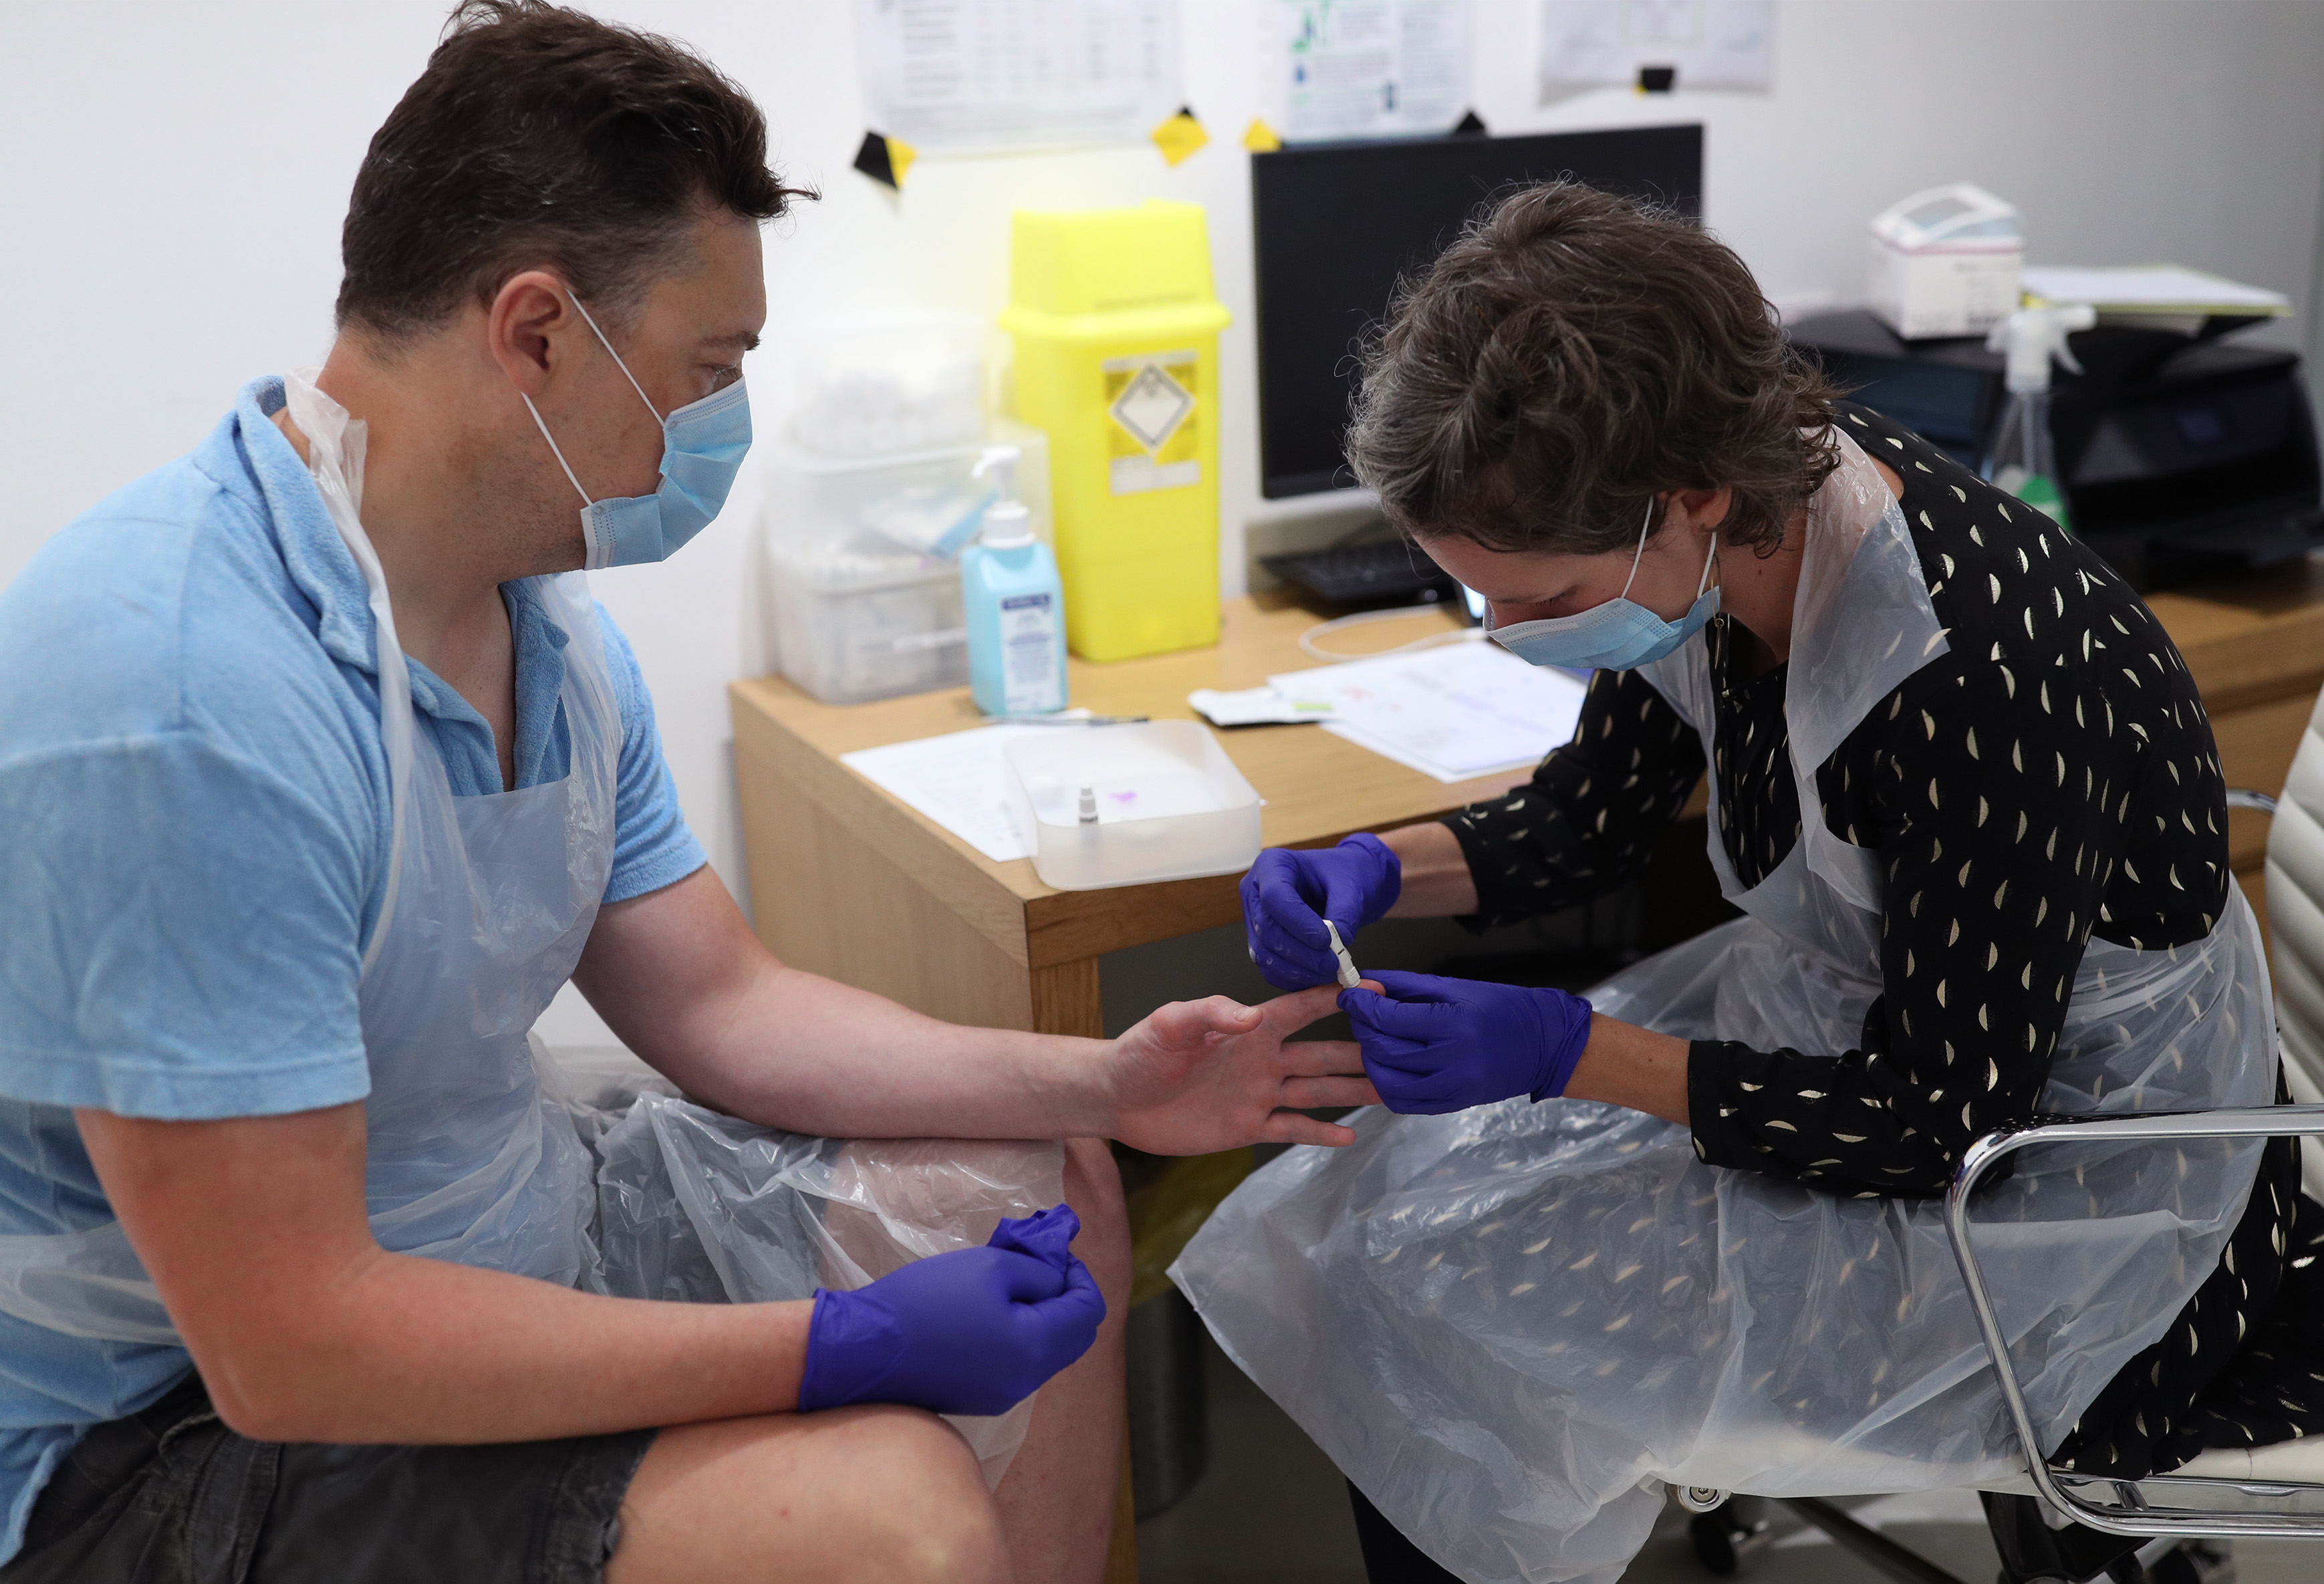 Katy Peters, of the London Vaccination Clinic, performs a German-made Nadal rapid antibody fingertip test for the detection of COVID-19 on client David Barton, a Capital markets lawyer aged 49, in Notting Hill, London, as the UK continues in lockdown to help curb the spread of the coronavirus.